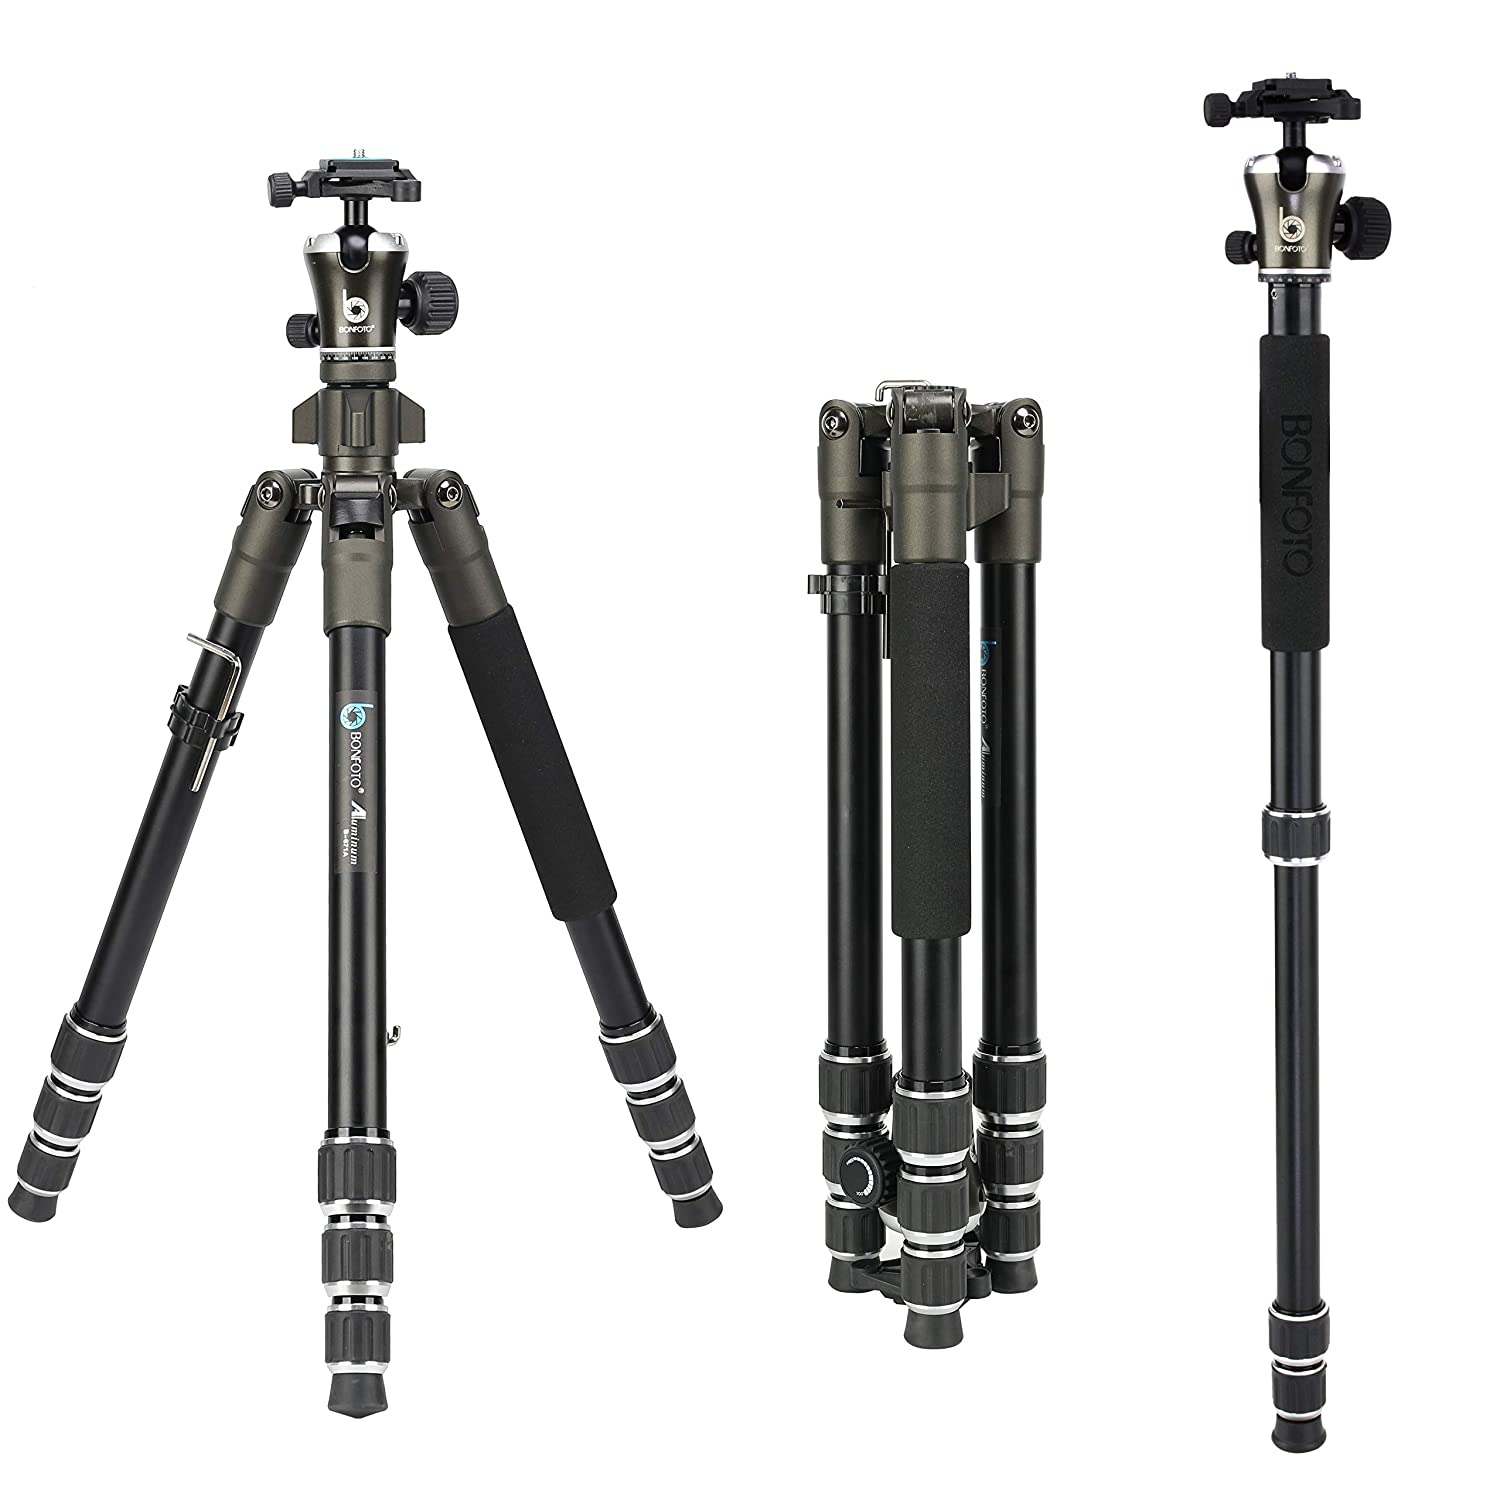 BONFOTO 55 Inch B671A Lightweight Aluminum Alloy Camera Travel Tripod and Monopod with 360 Degree Ball Head + Two 1/4' Quick Release Plates + Carry Bag for Canon Nikon Sony DSLR DV and Digital Camera